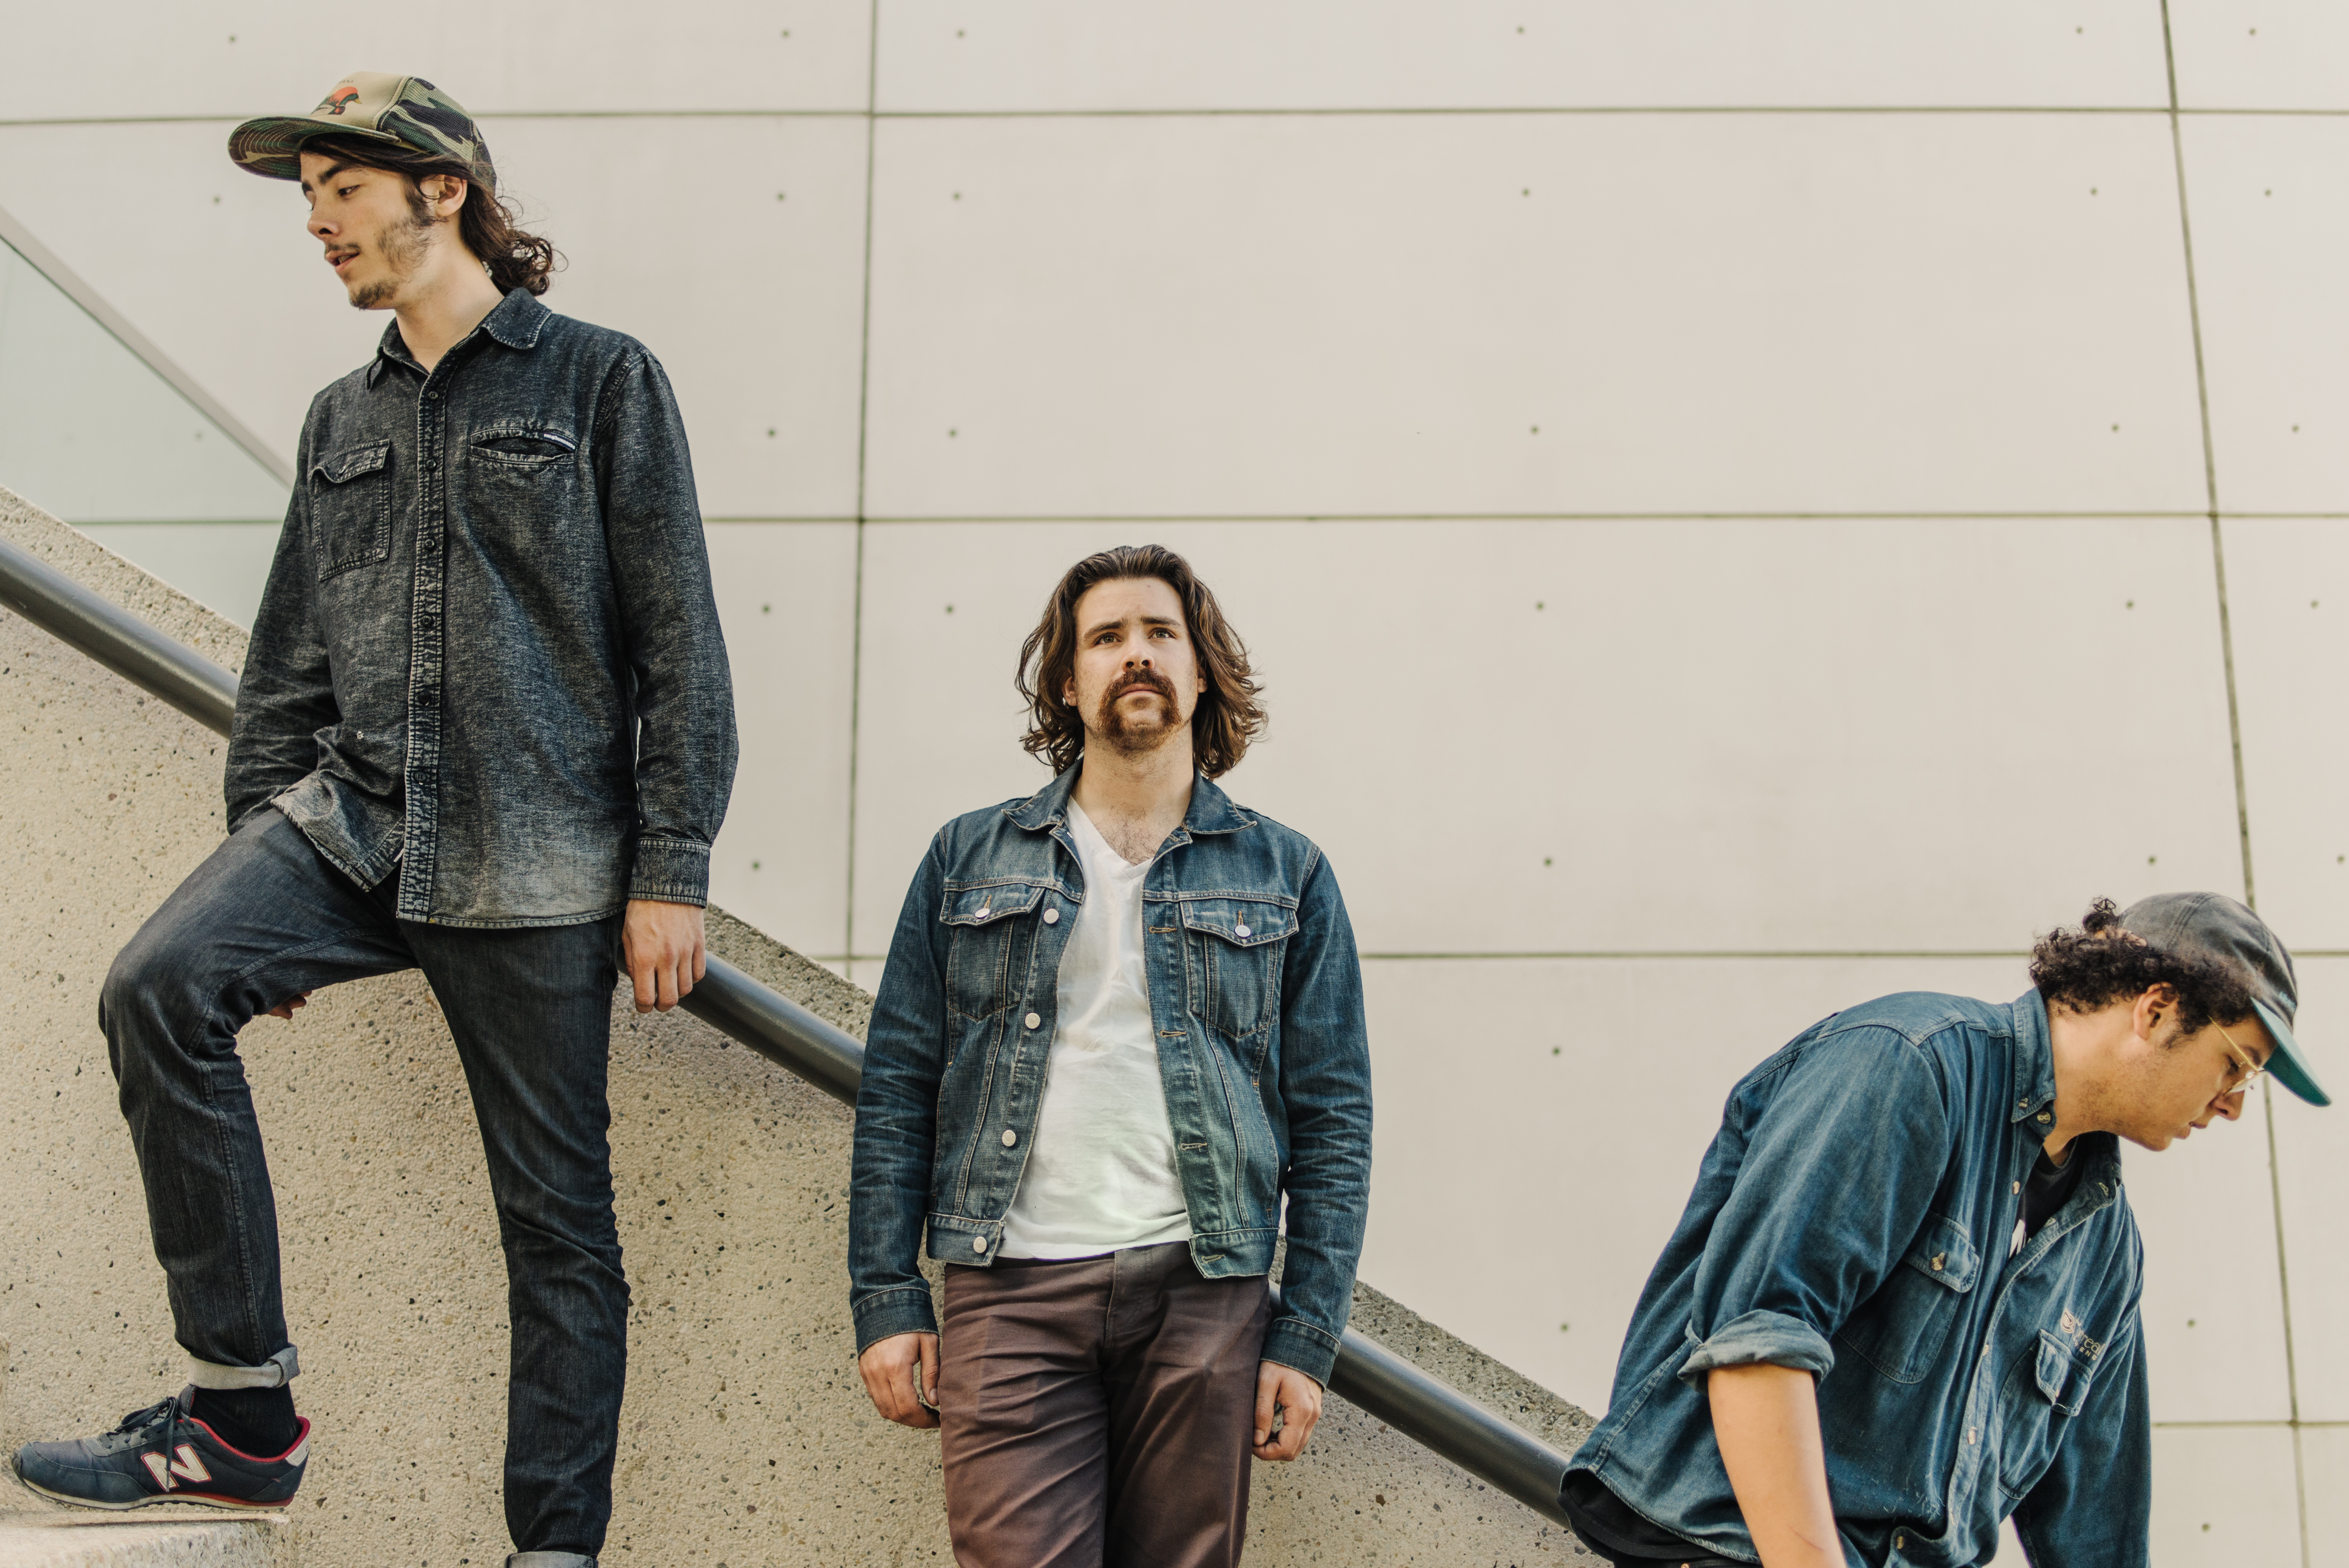 """PREMIERE: Jesse and the Dandelions release vibrant single """"Give Up The Gold"""""""